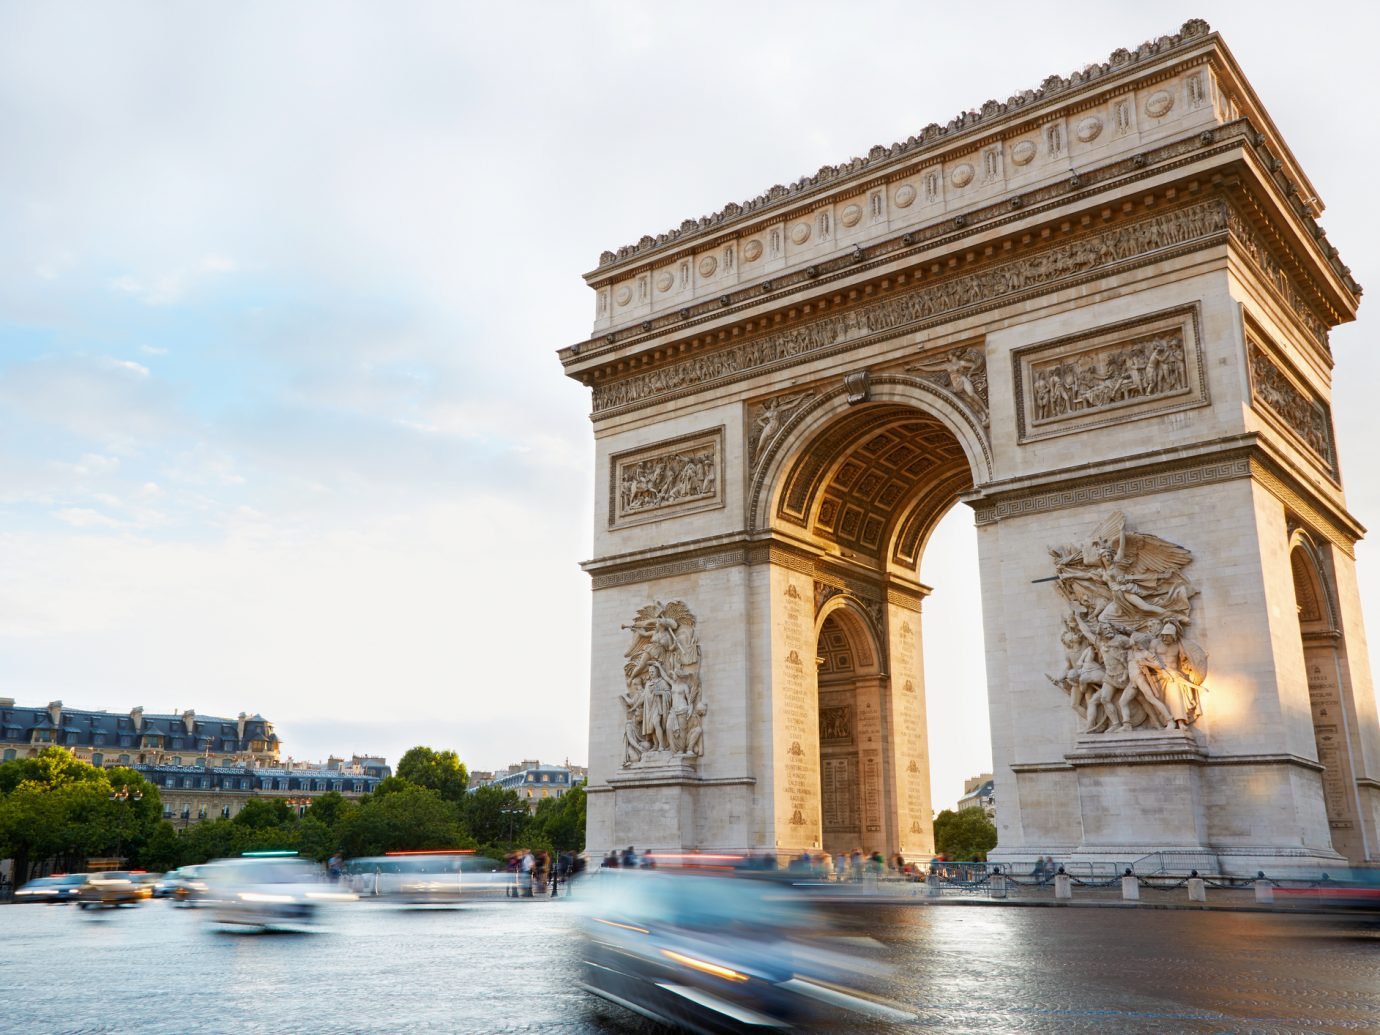 Arc de Triomphe in Paris, France. Traffic in the morning.